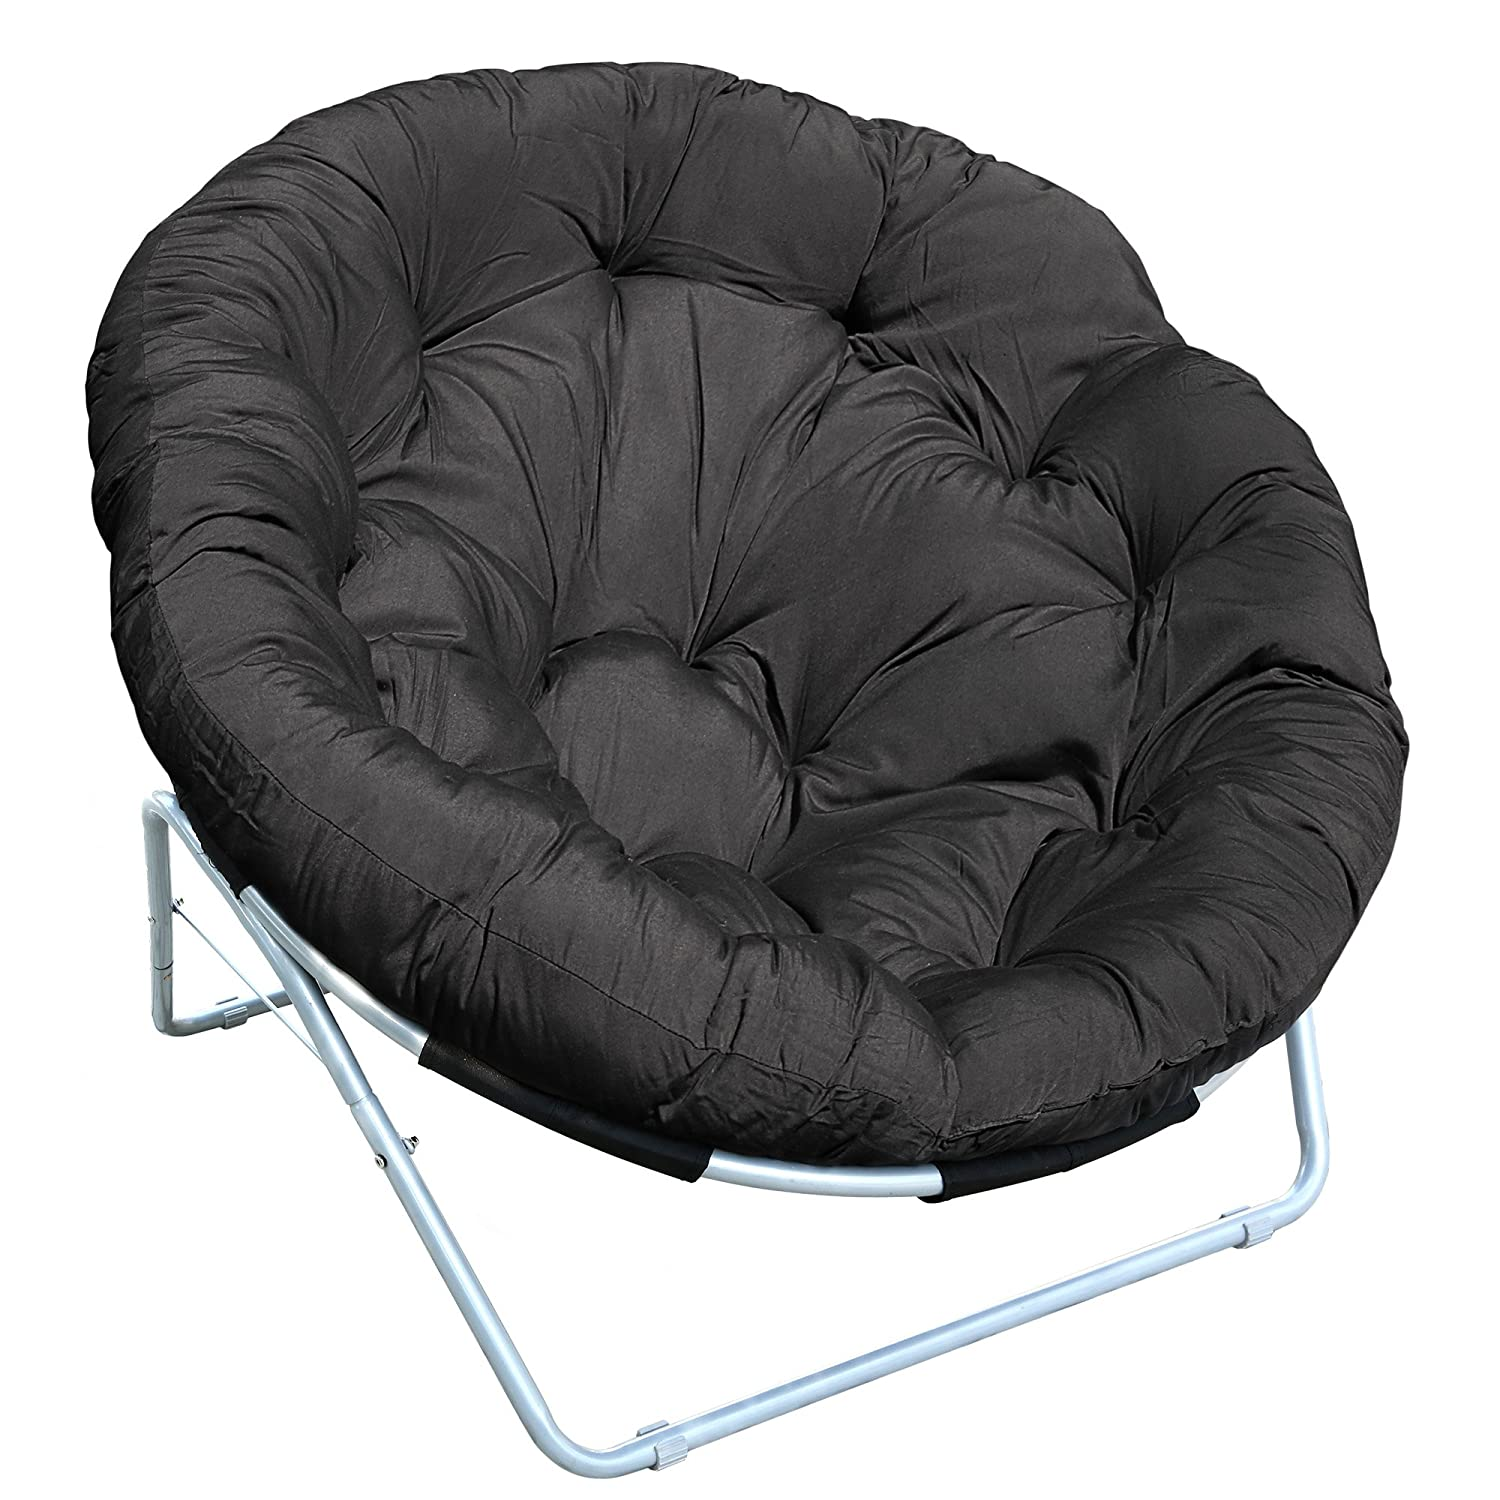 Cravog Outdoor Yard Moon Chair Round Cushion Padded Papasan Chair